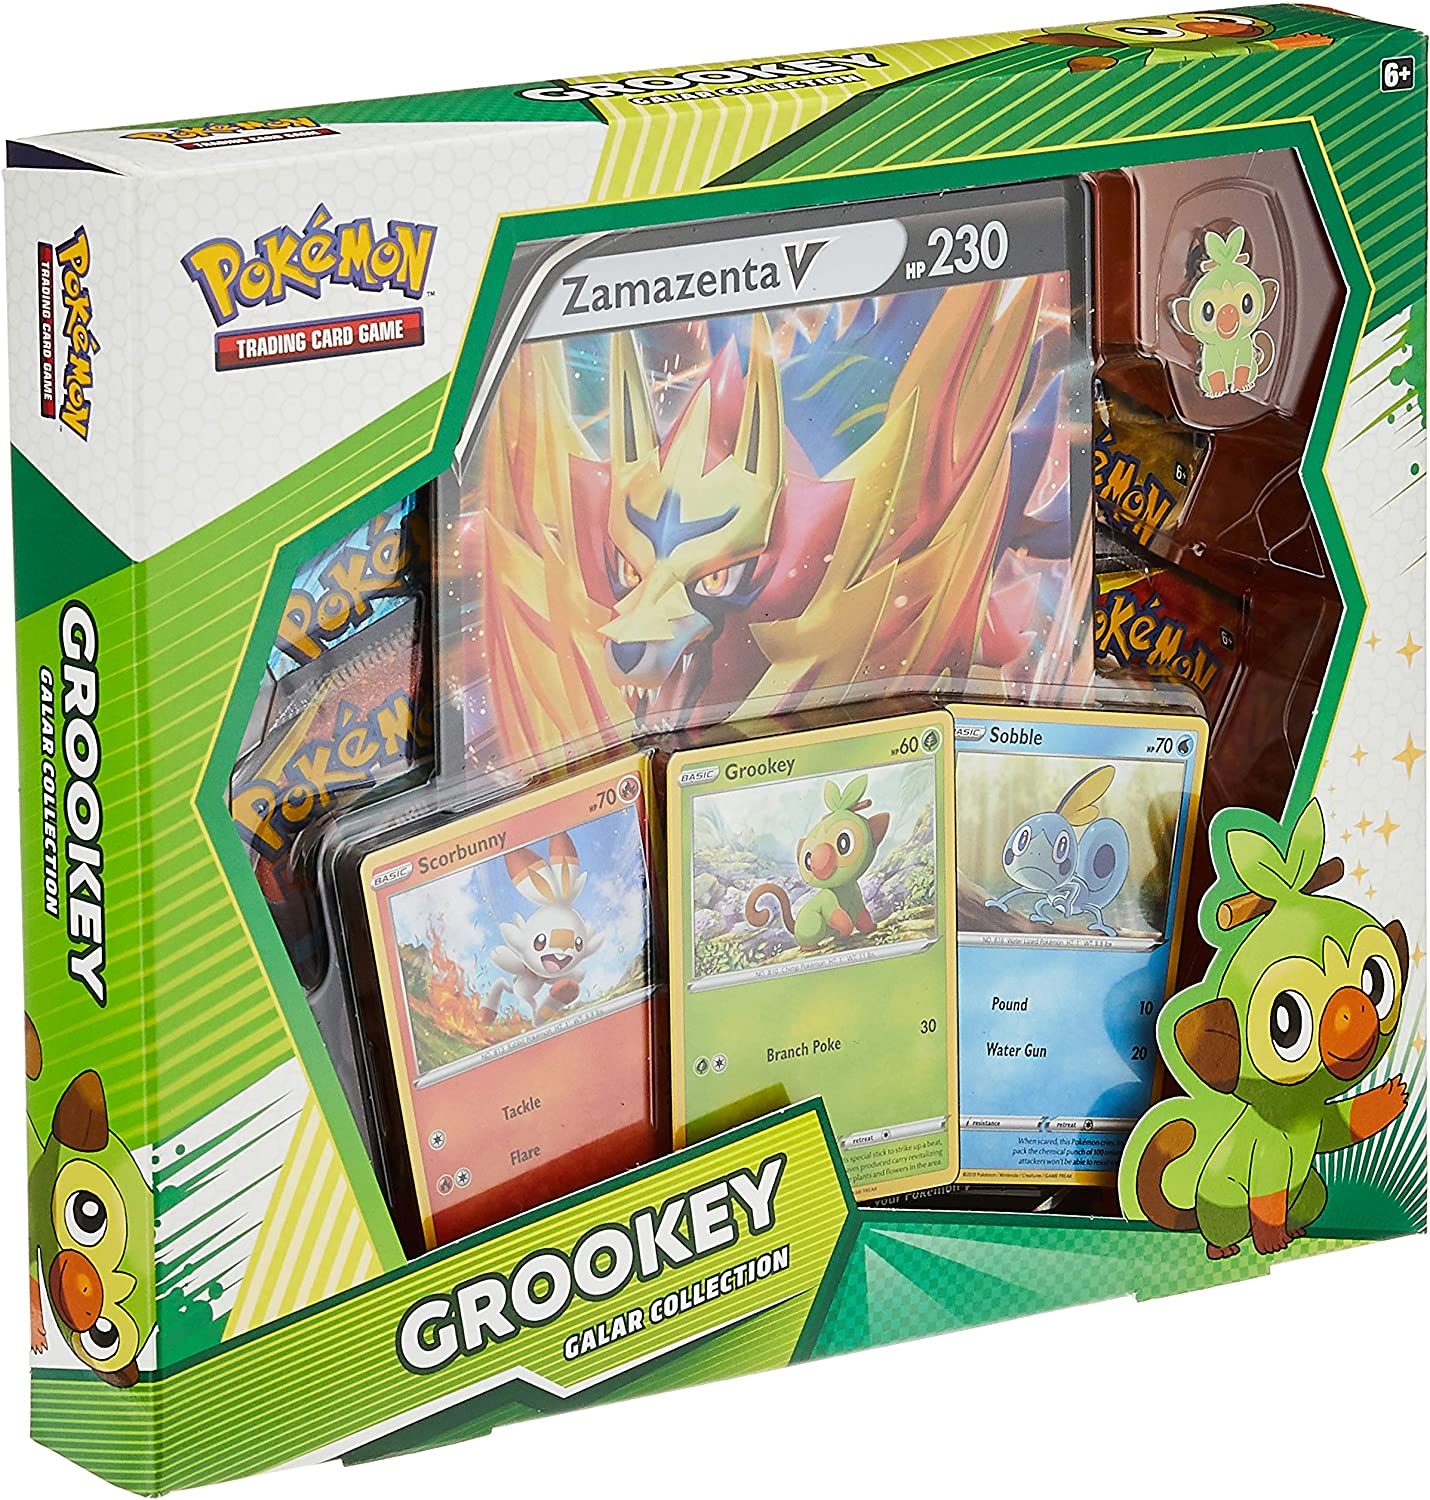 Pokemon TCG Polteageist V Box Collection Sword /& Shield 4 Booster Packs